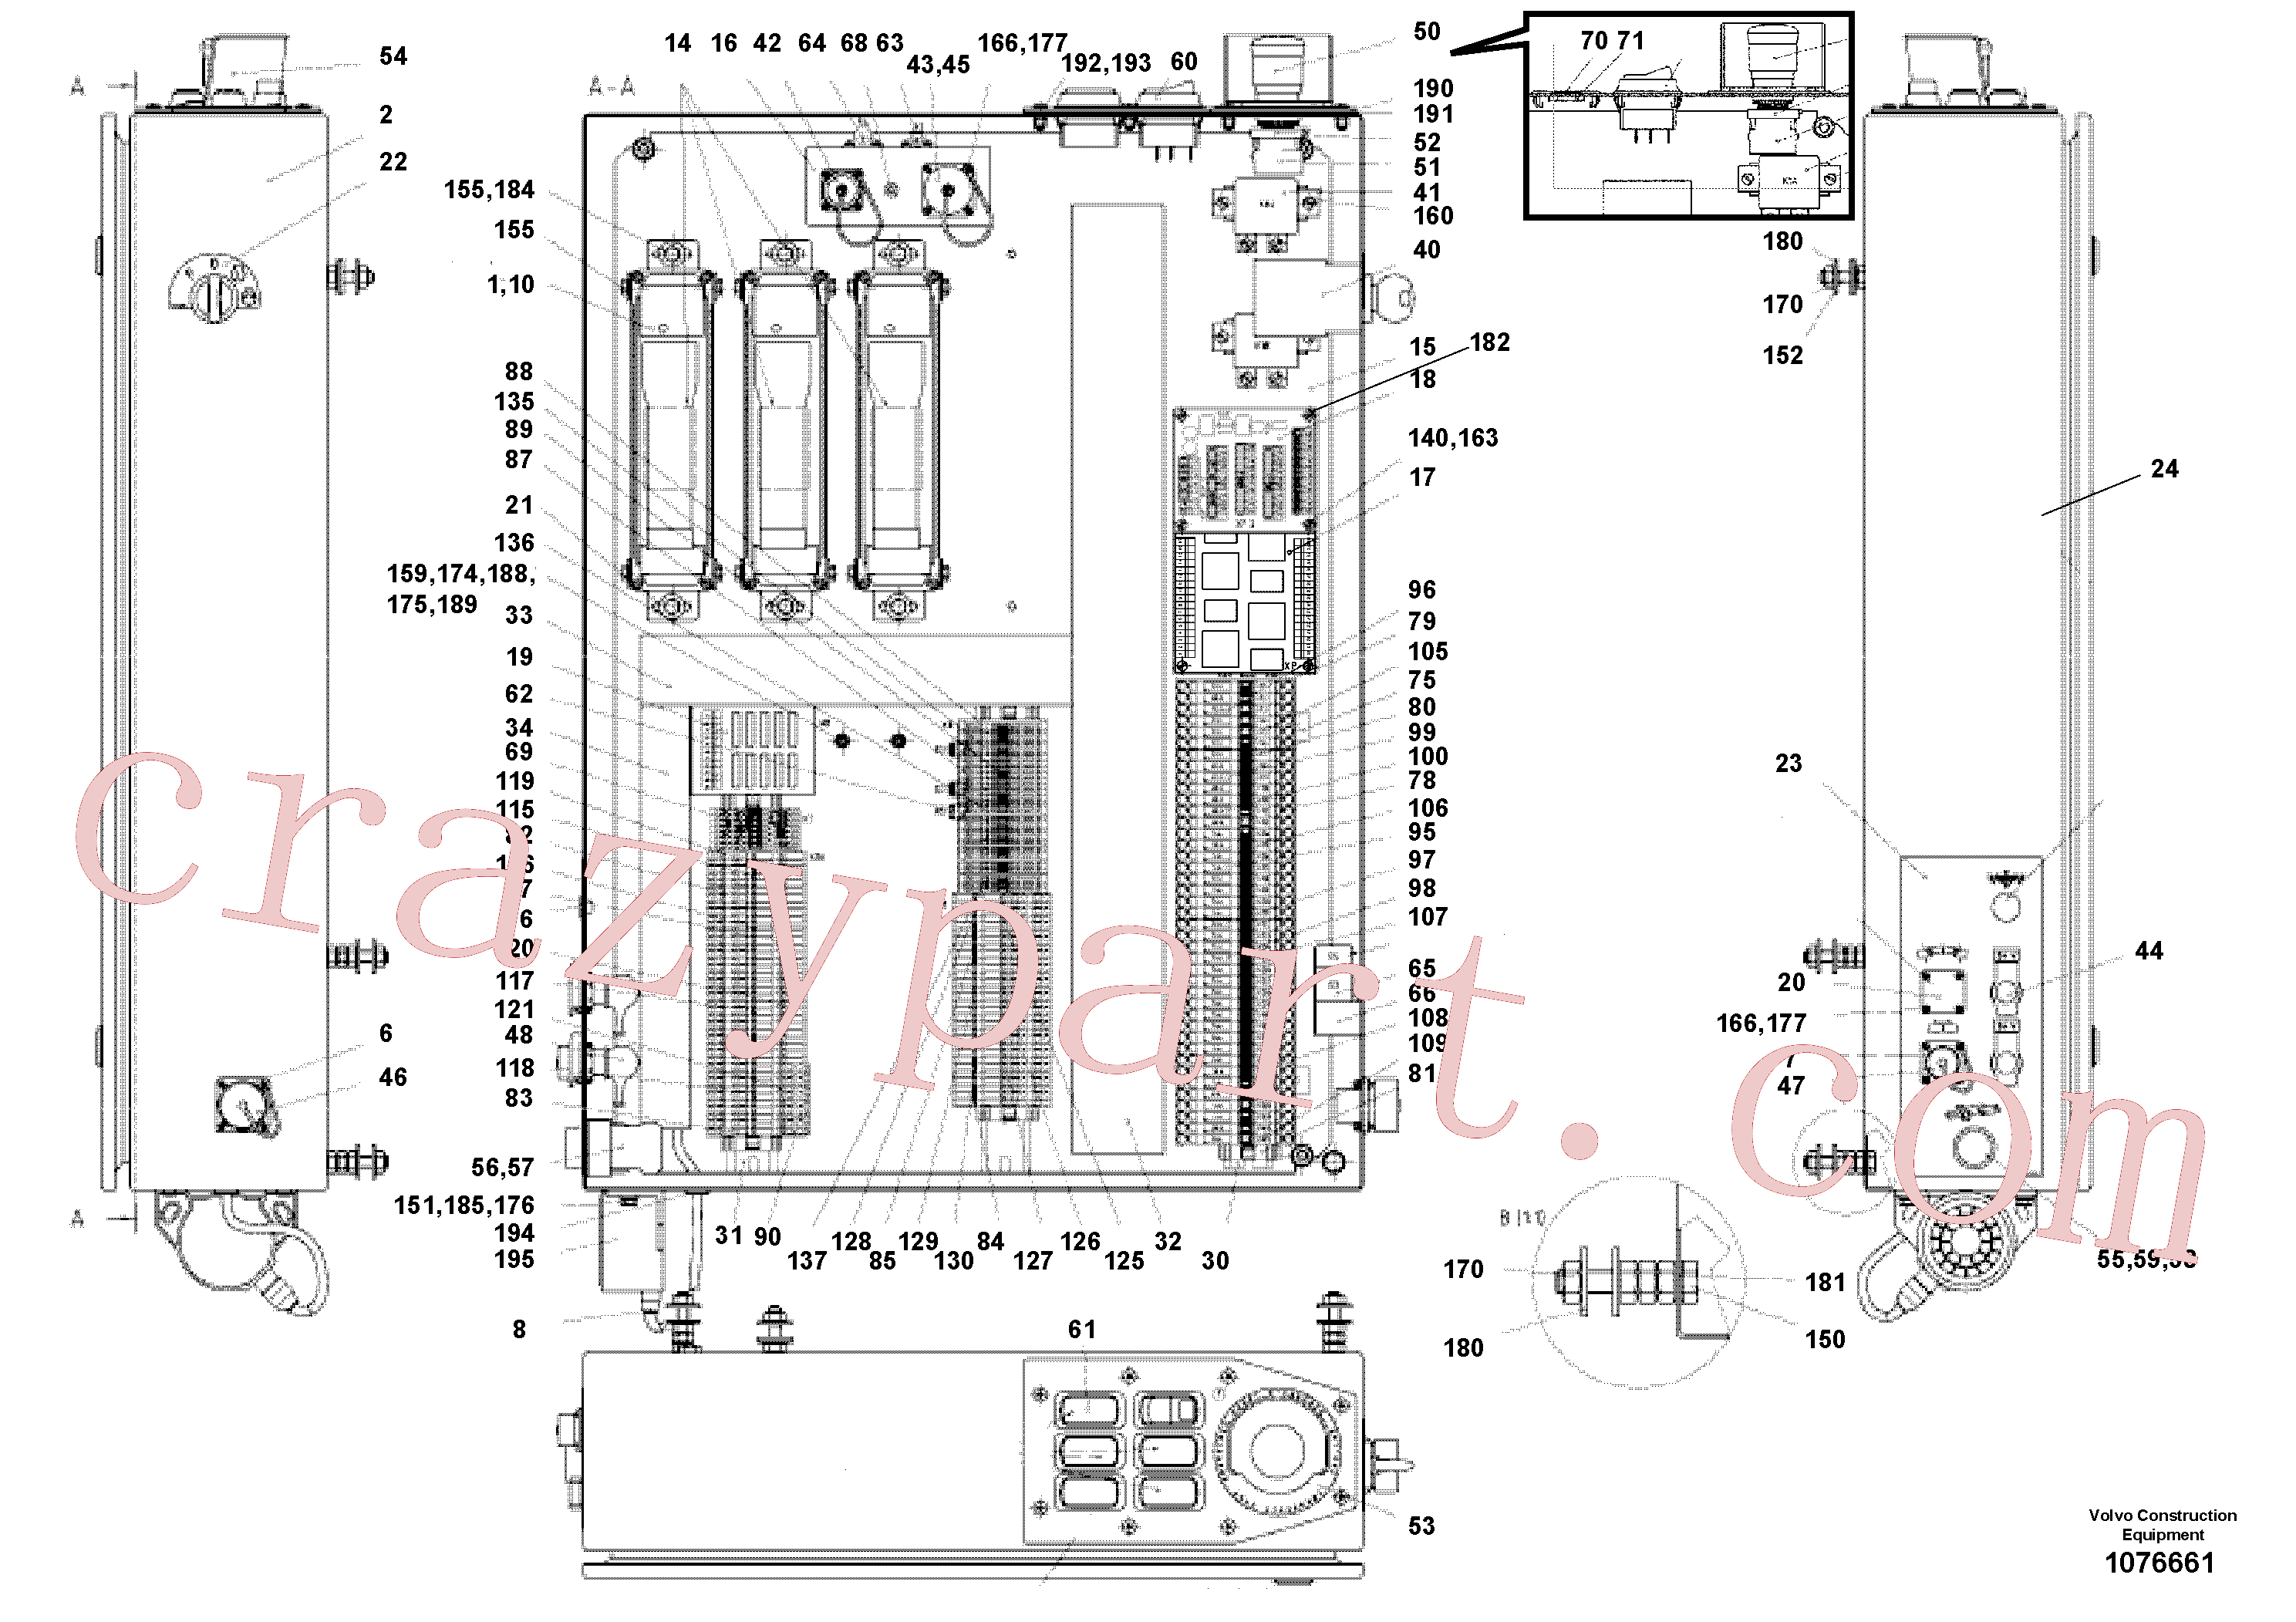 RM14106892 for Volvo main distributor(1076661 assembly)